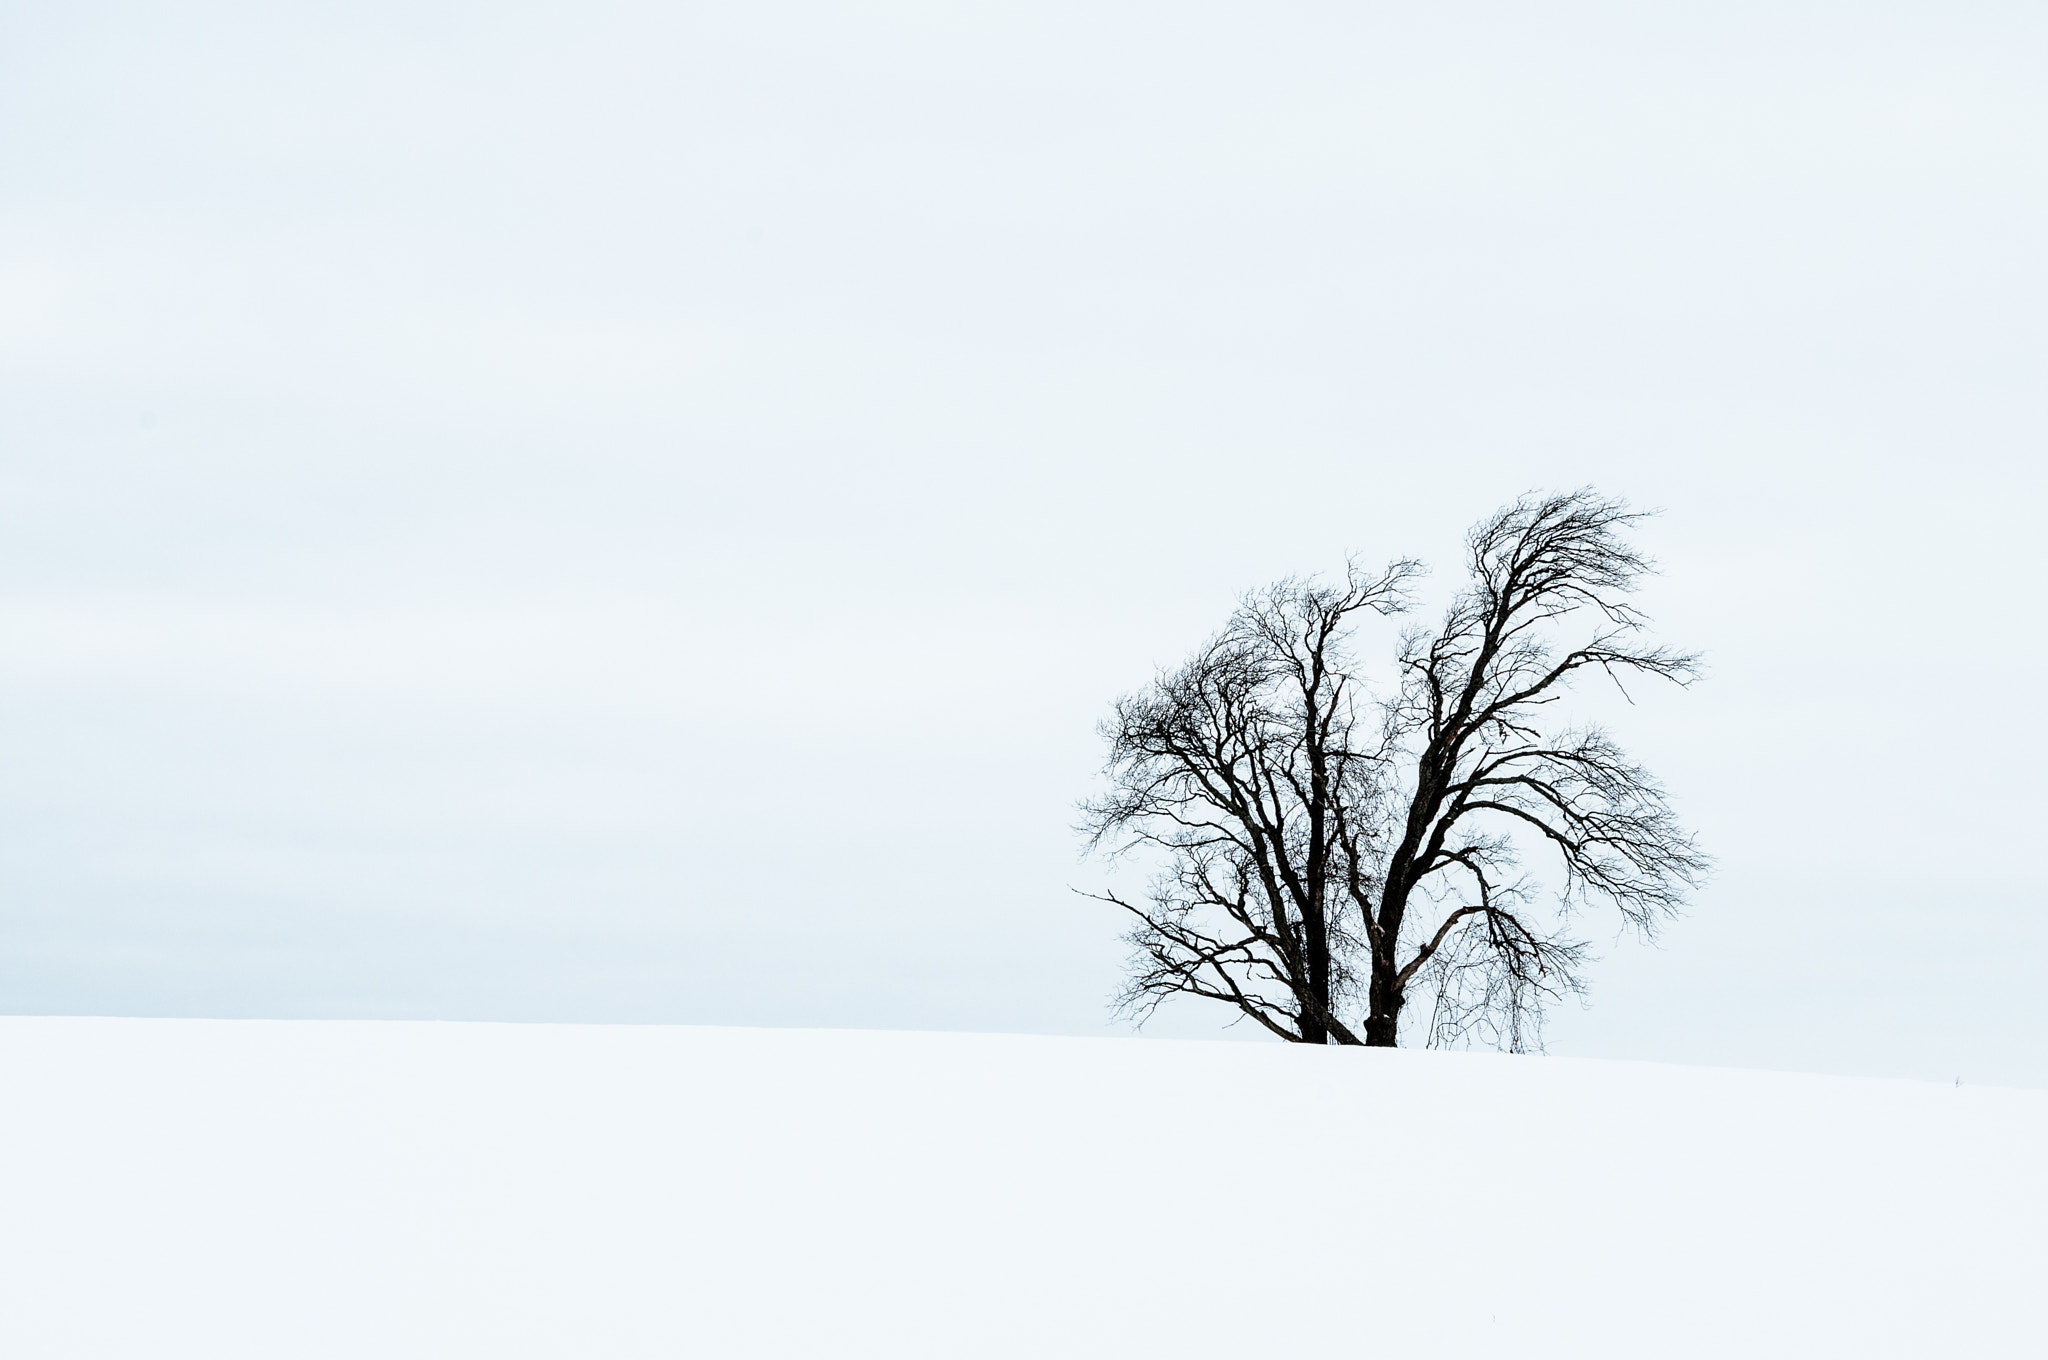 Photograph Winter in Southern ON by samer RIZK on 500px